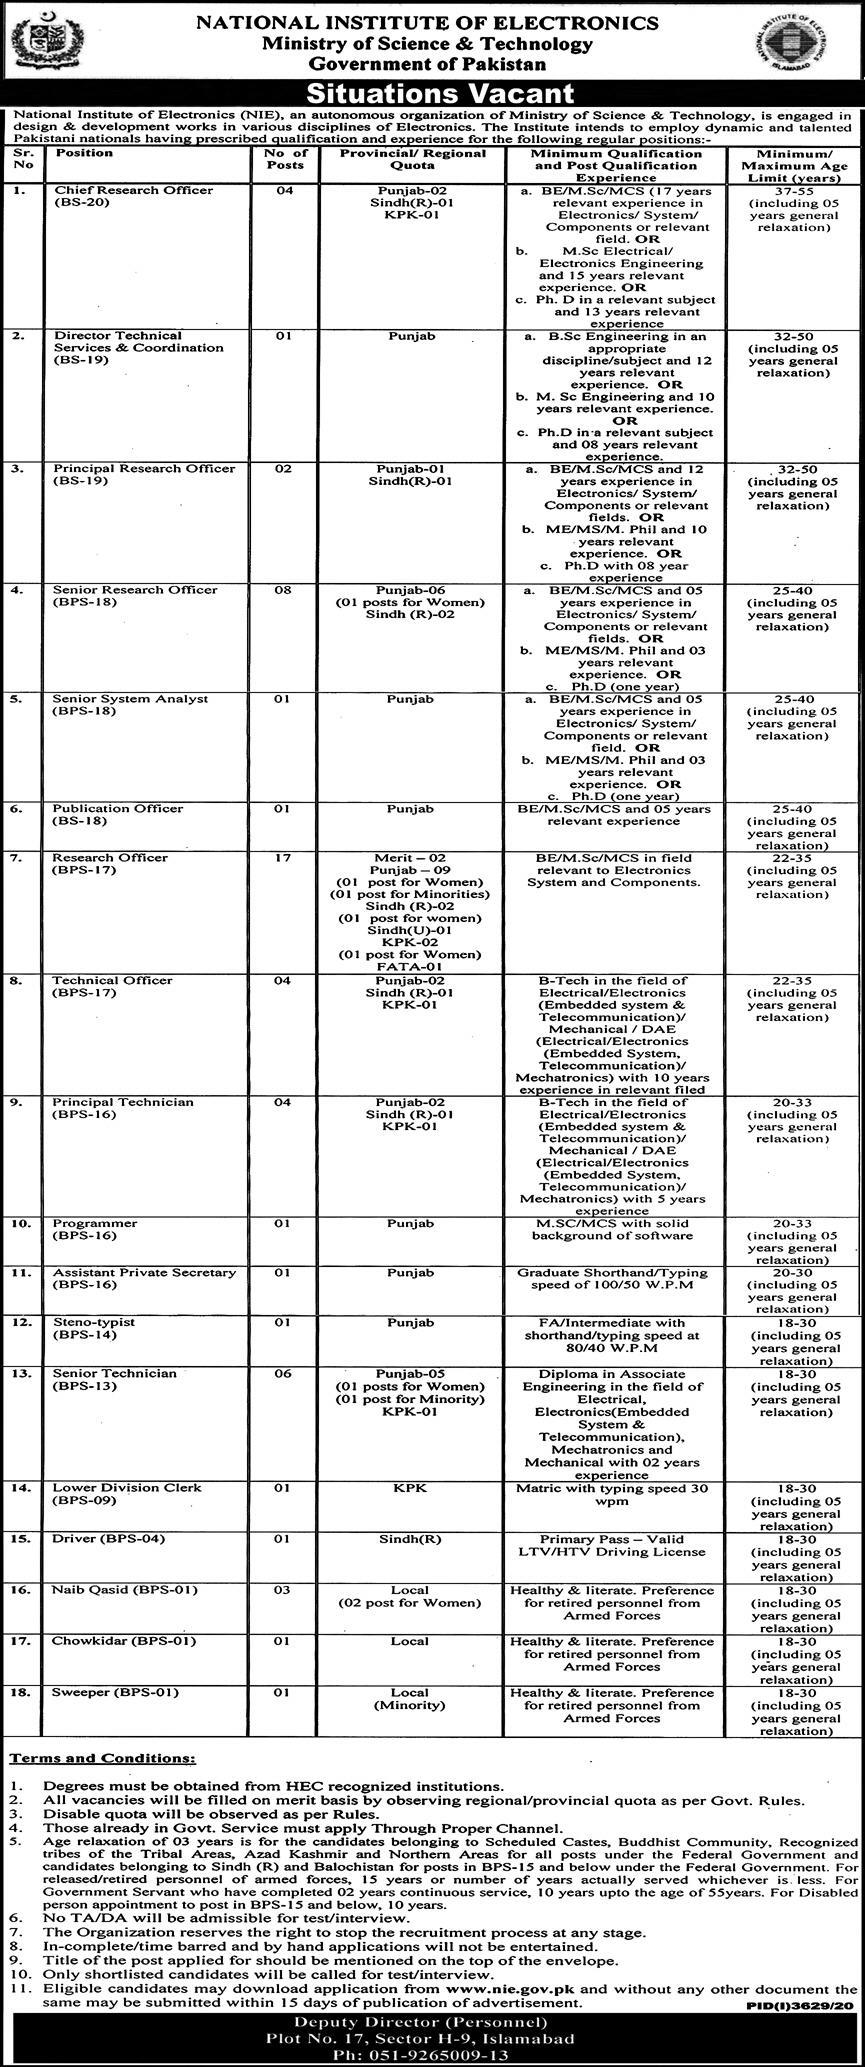 Chief Research Officer (BS-20) Jobs in National Institute of Electronics 17 Jan 2021